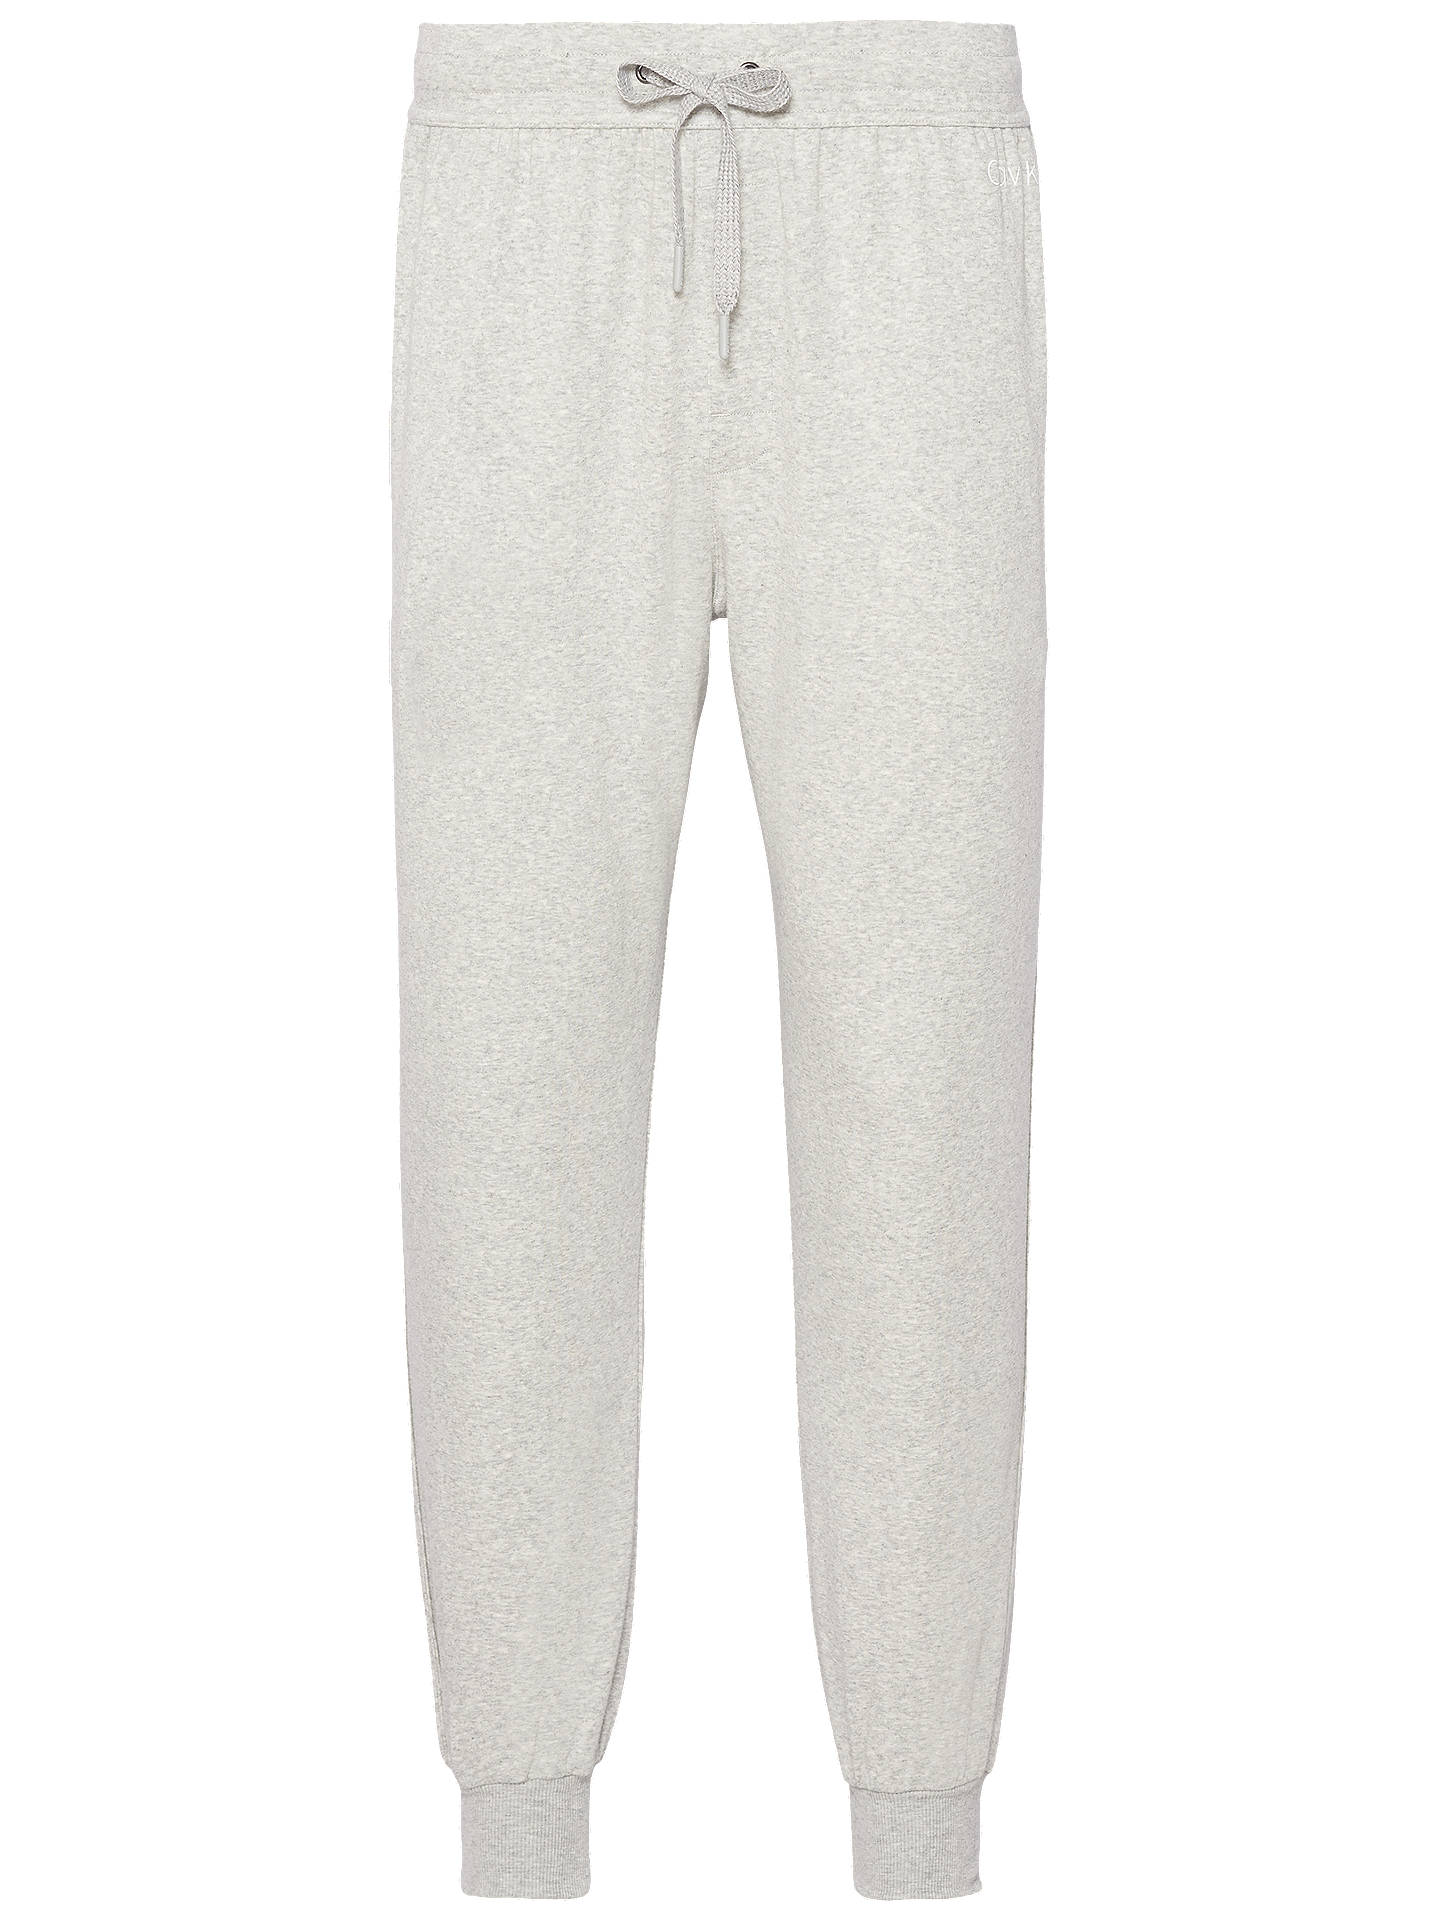 Buy Calvin Klein Jogging Bottoms, Grey, S Online at johnlewis.com